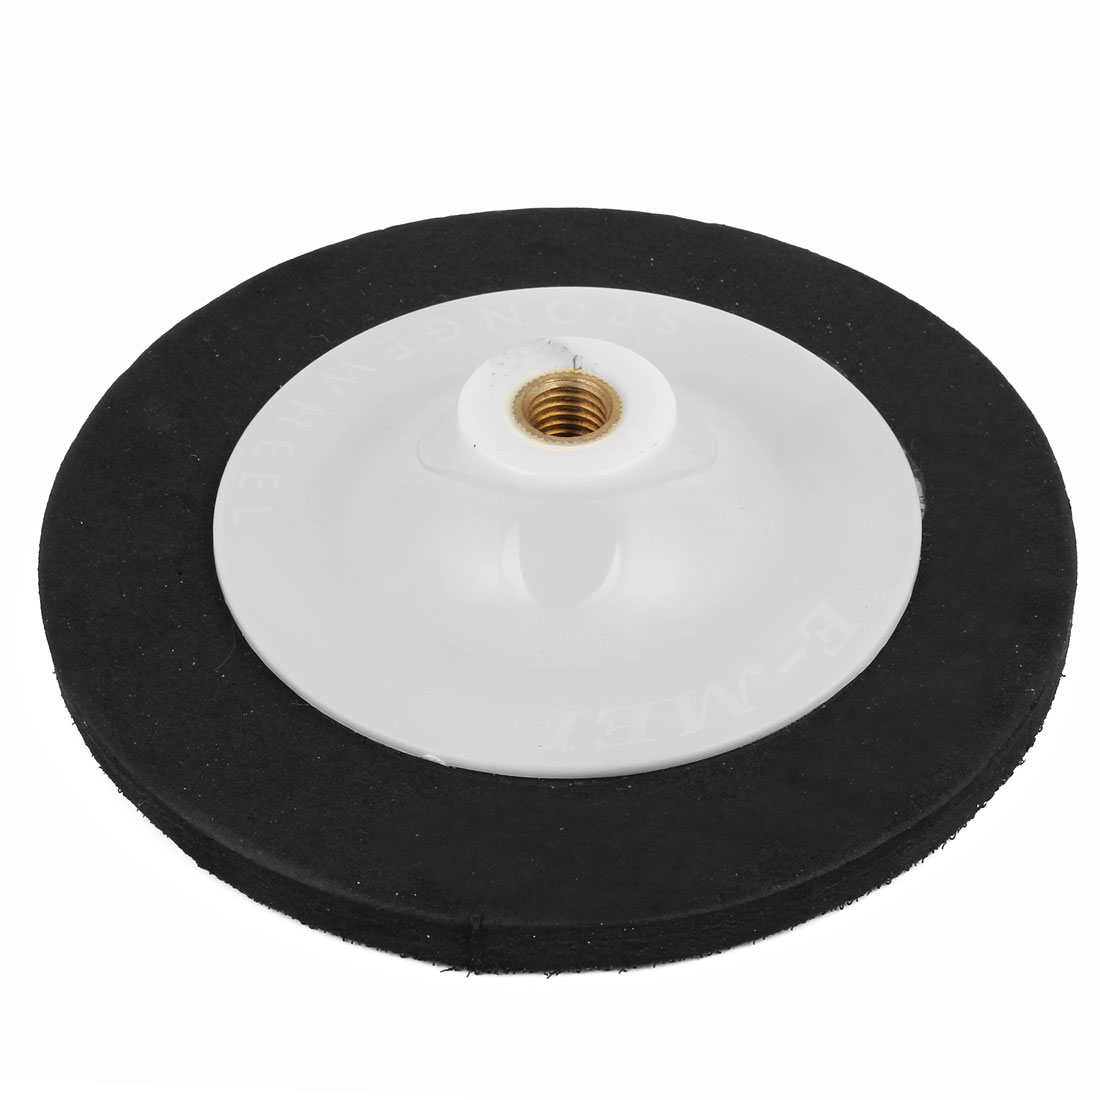 "7"" Dia Round Polishing Waxing Buffer Wheel White Black for Car Buffing"